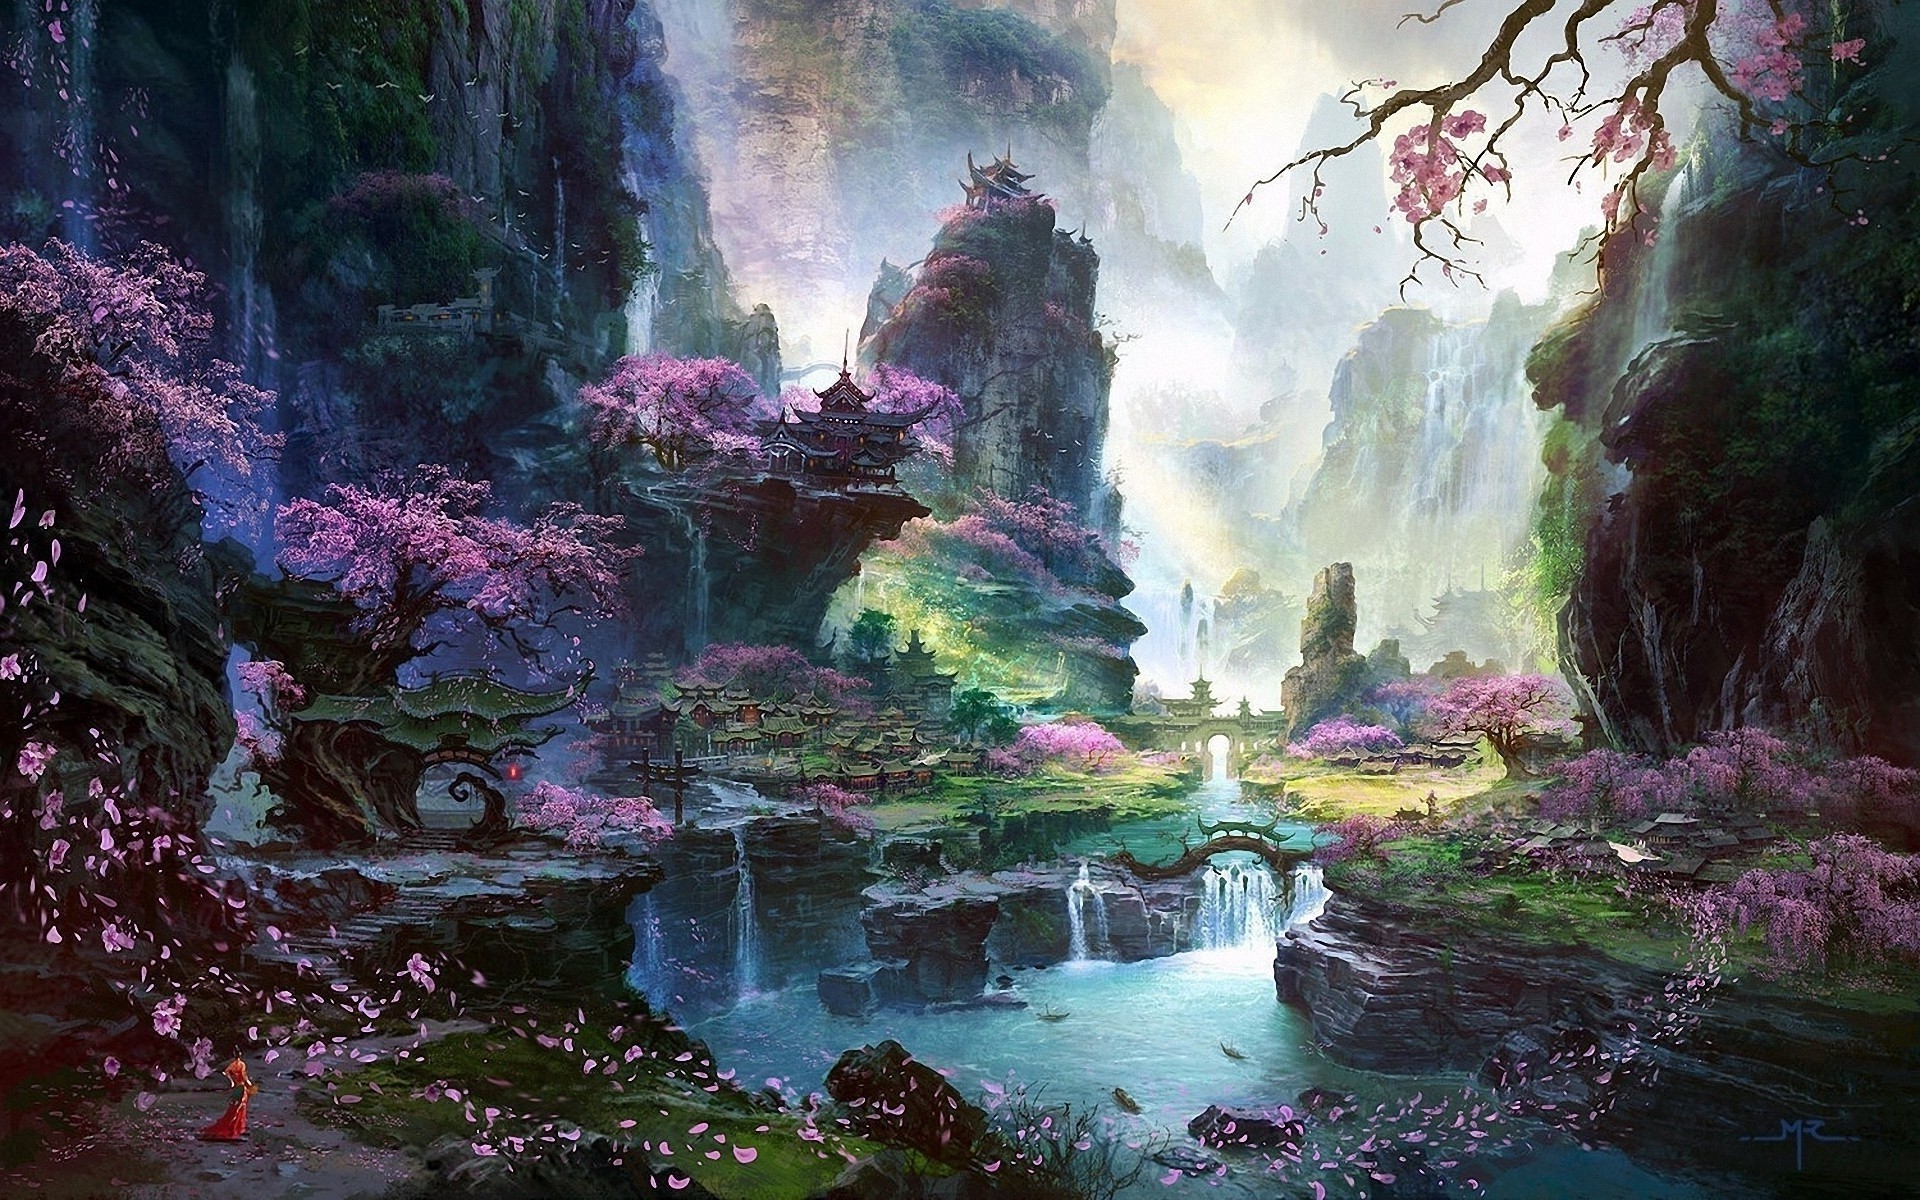 Stunning Hd Fantasy Wallpapers: Chinese Scenery Wallpaper (66+ Images